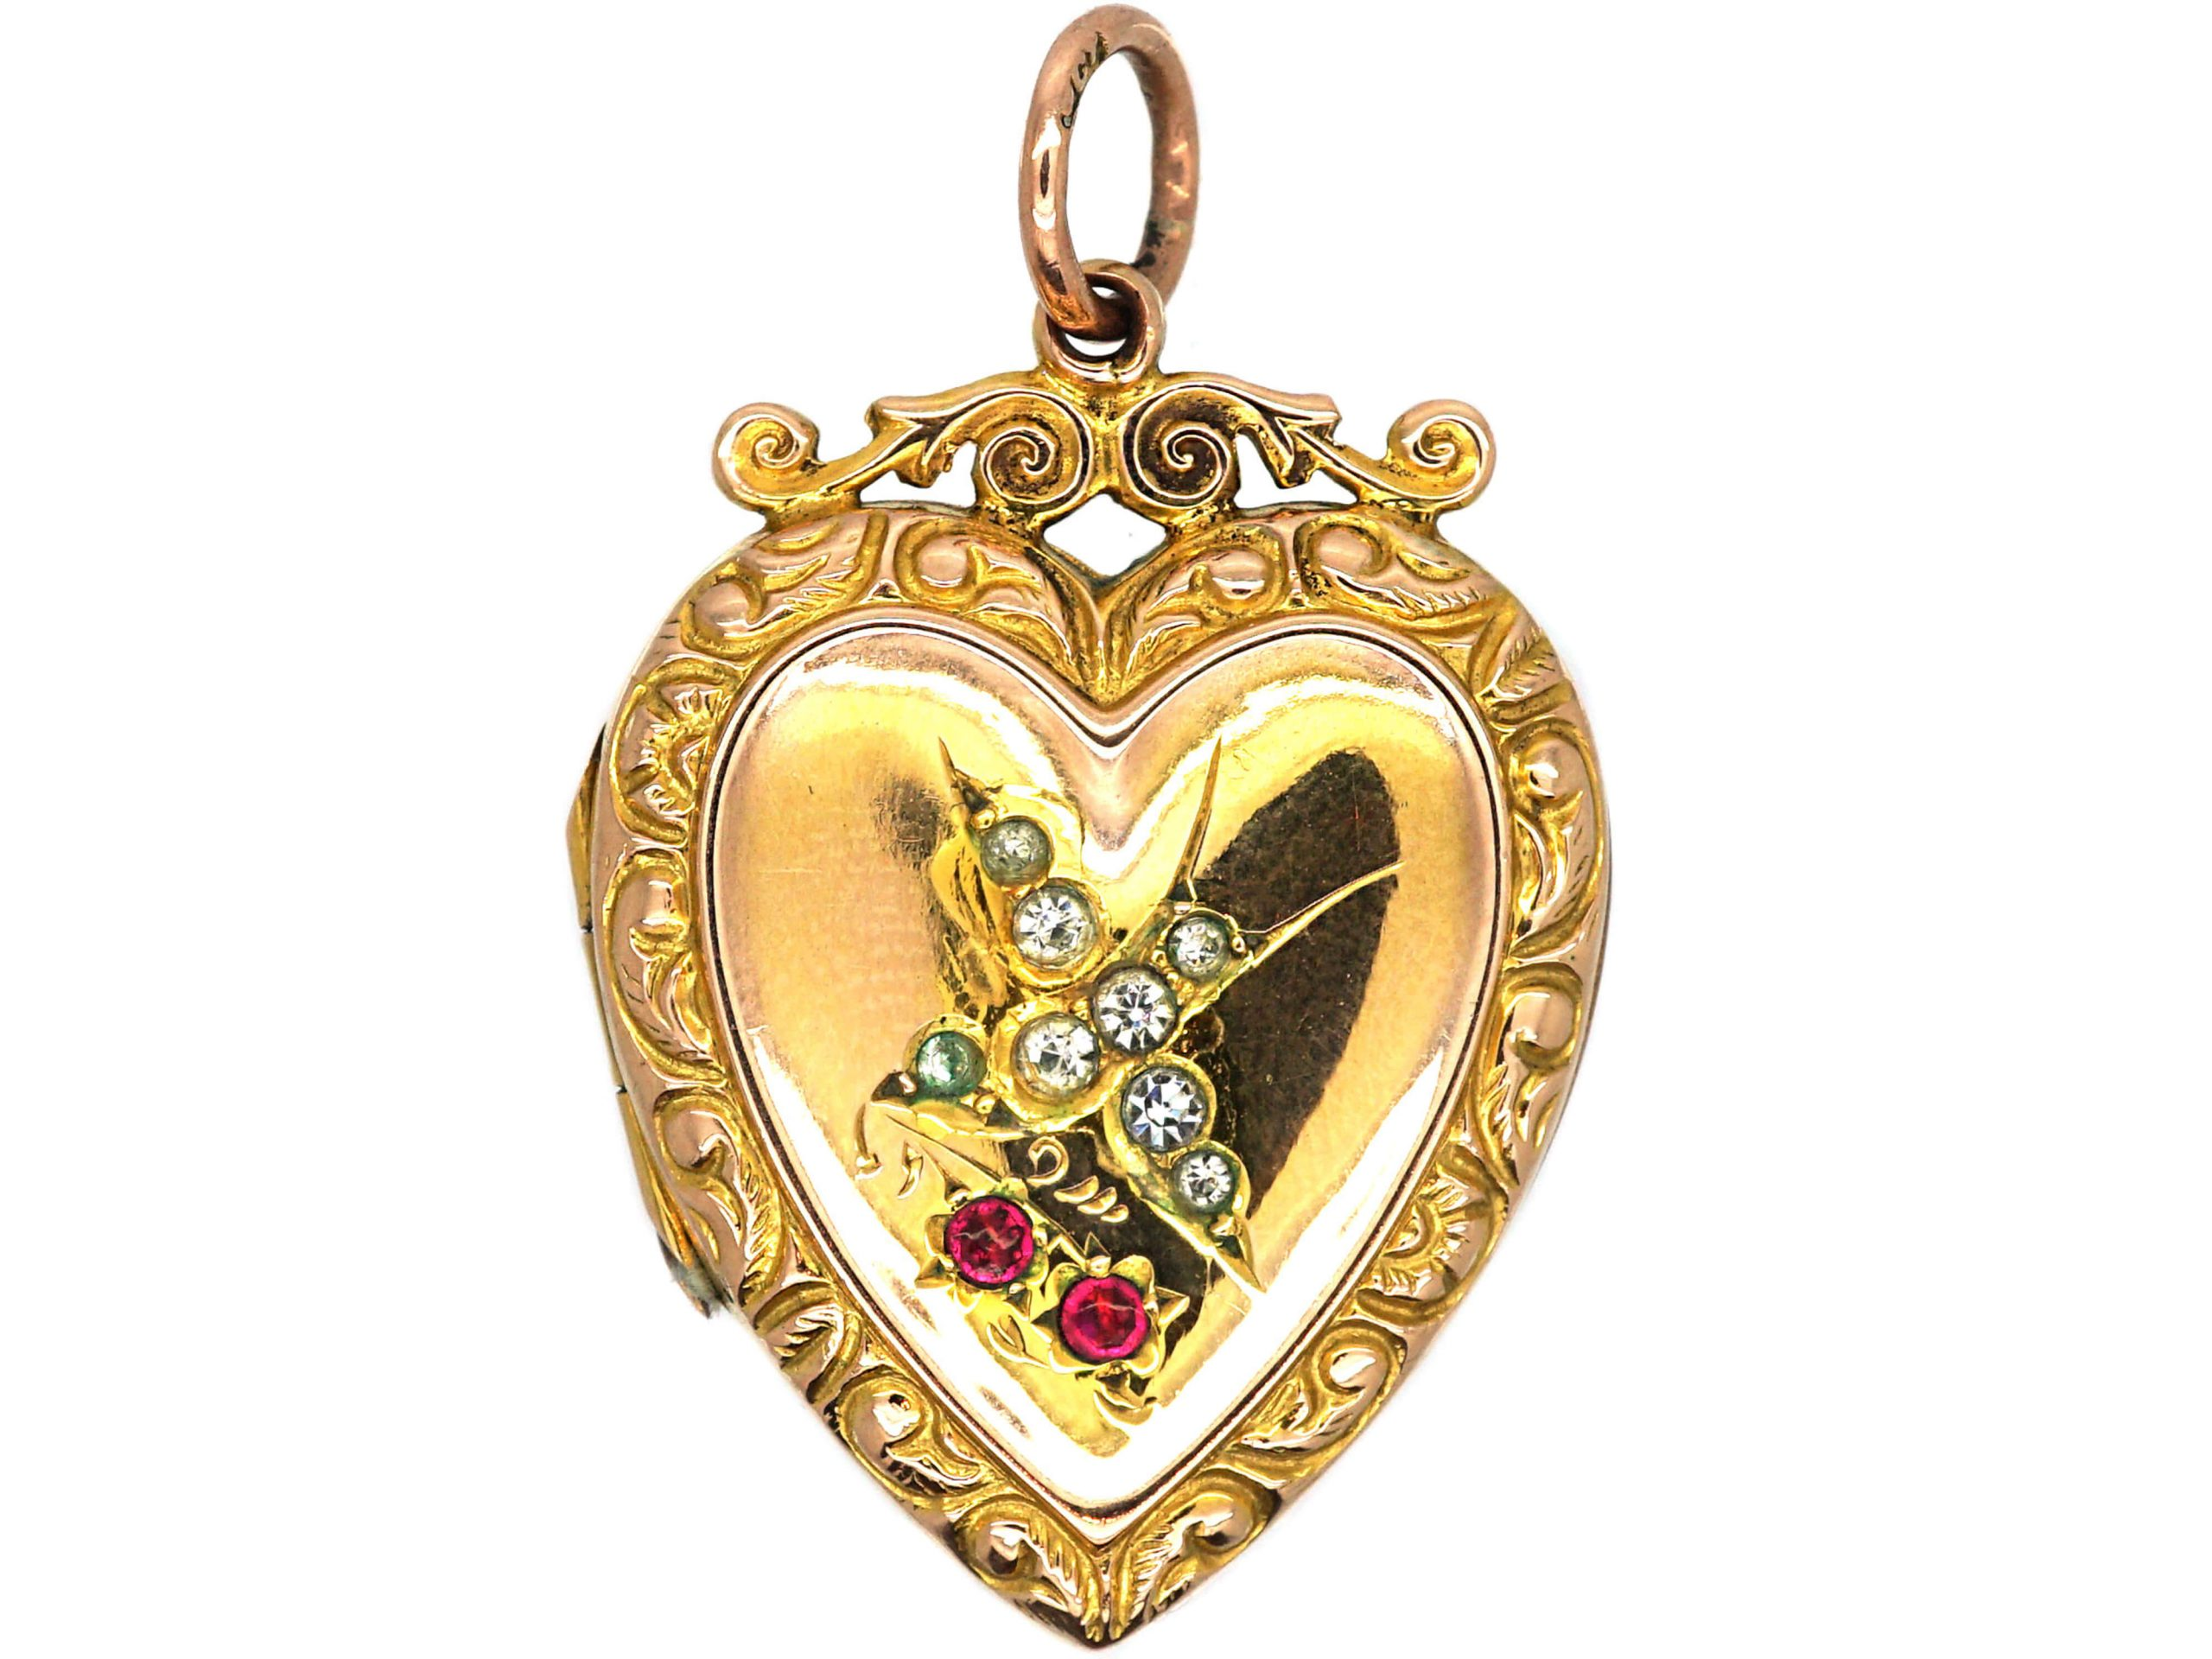 Edwardian 9ct Gold Back & Front Heart Shaped Locket with Paste Set Swallow Motif